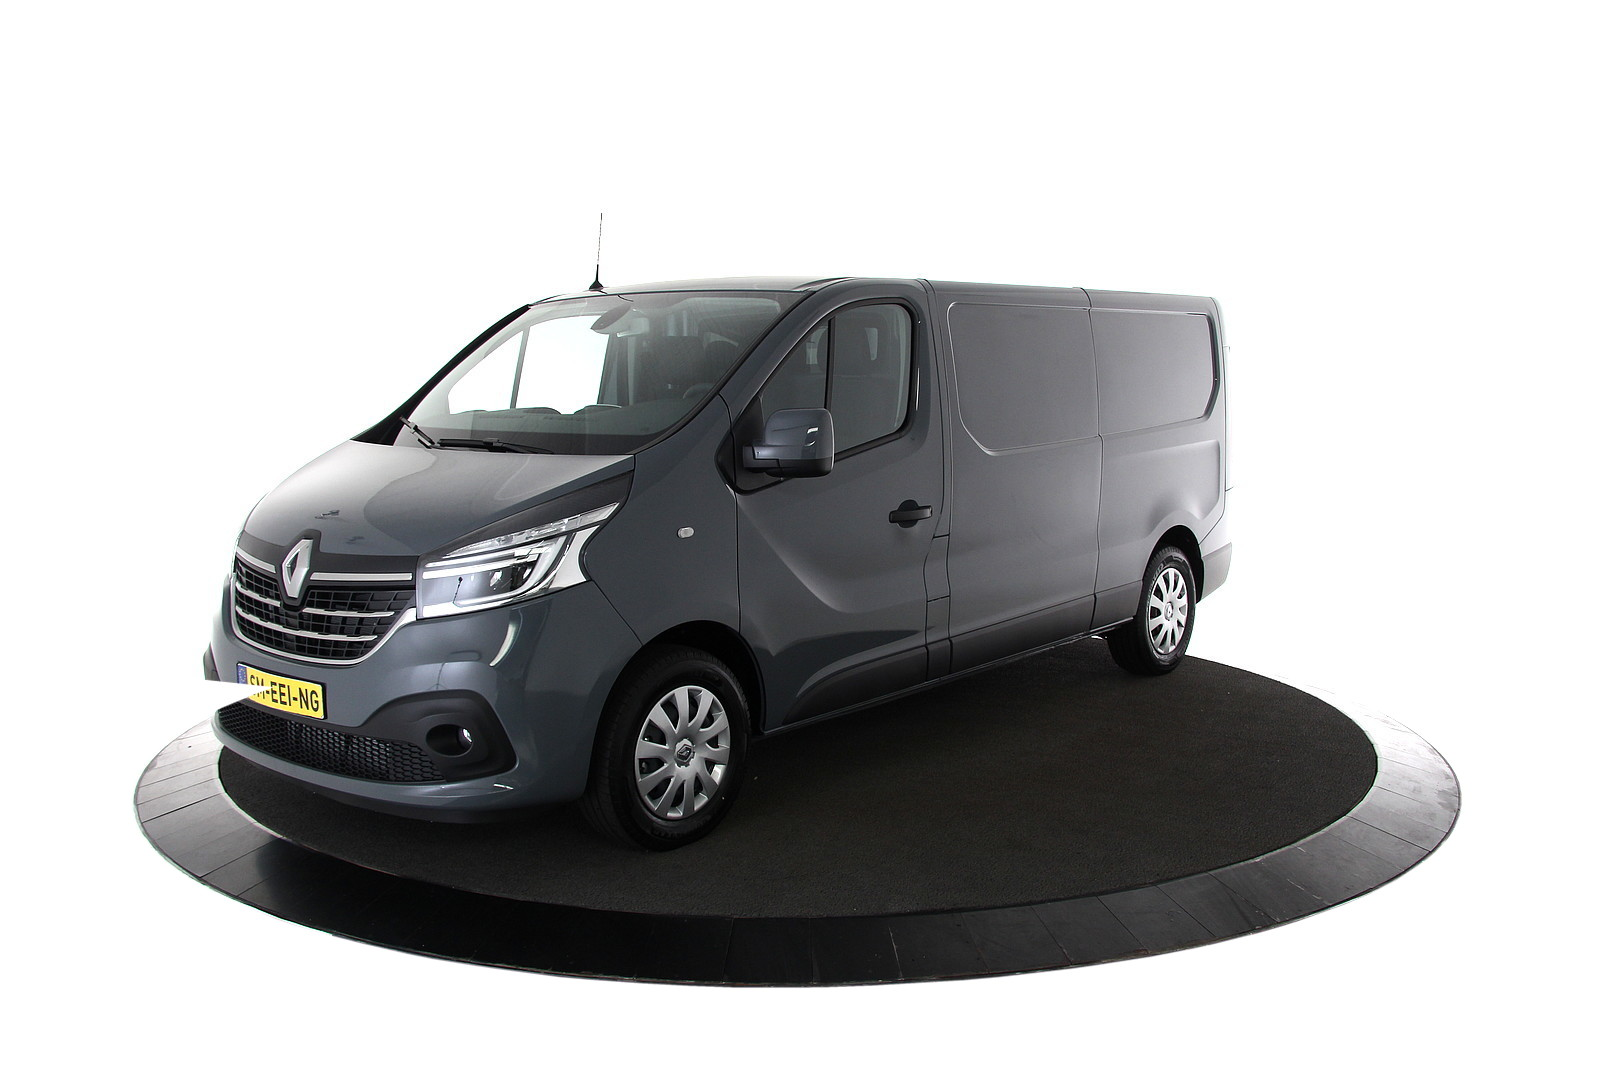 Renault Trafic 2.0 dCi 170 PK T29 L2H1 Luxe Automaat